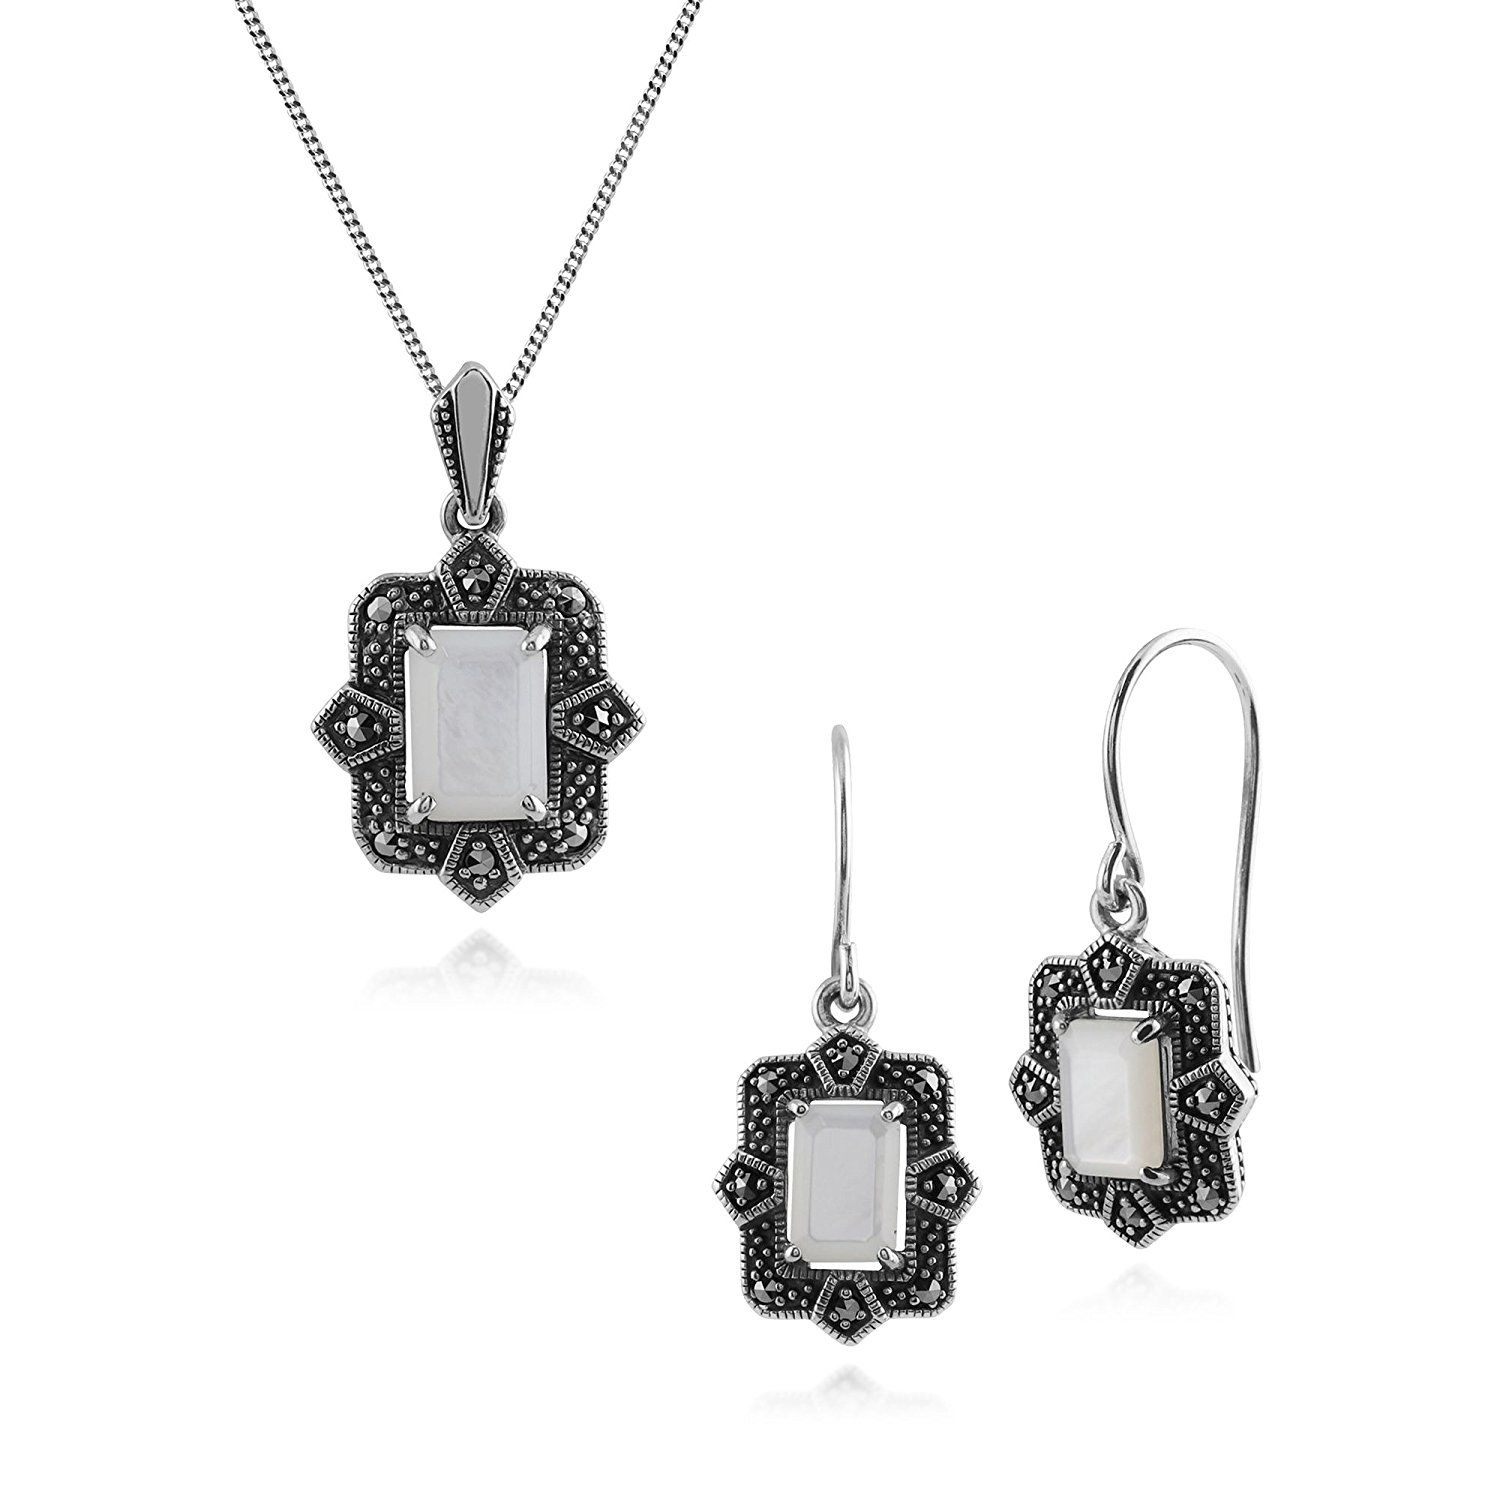 Gemondo Sterling Silver Art Deco Emerald & Marcasite Stud Earring and 45cm Necklace Set JrjeOOw